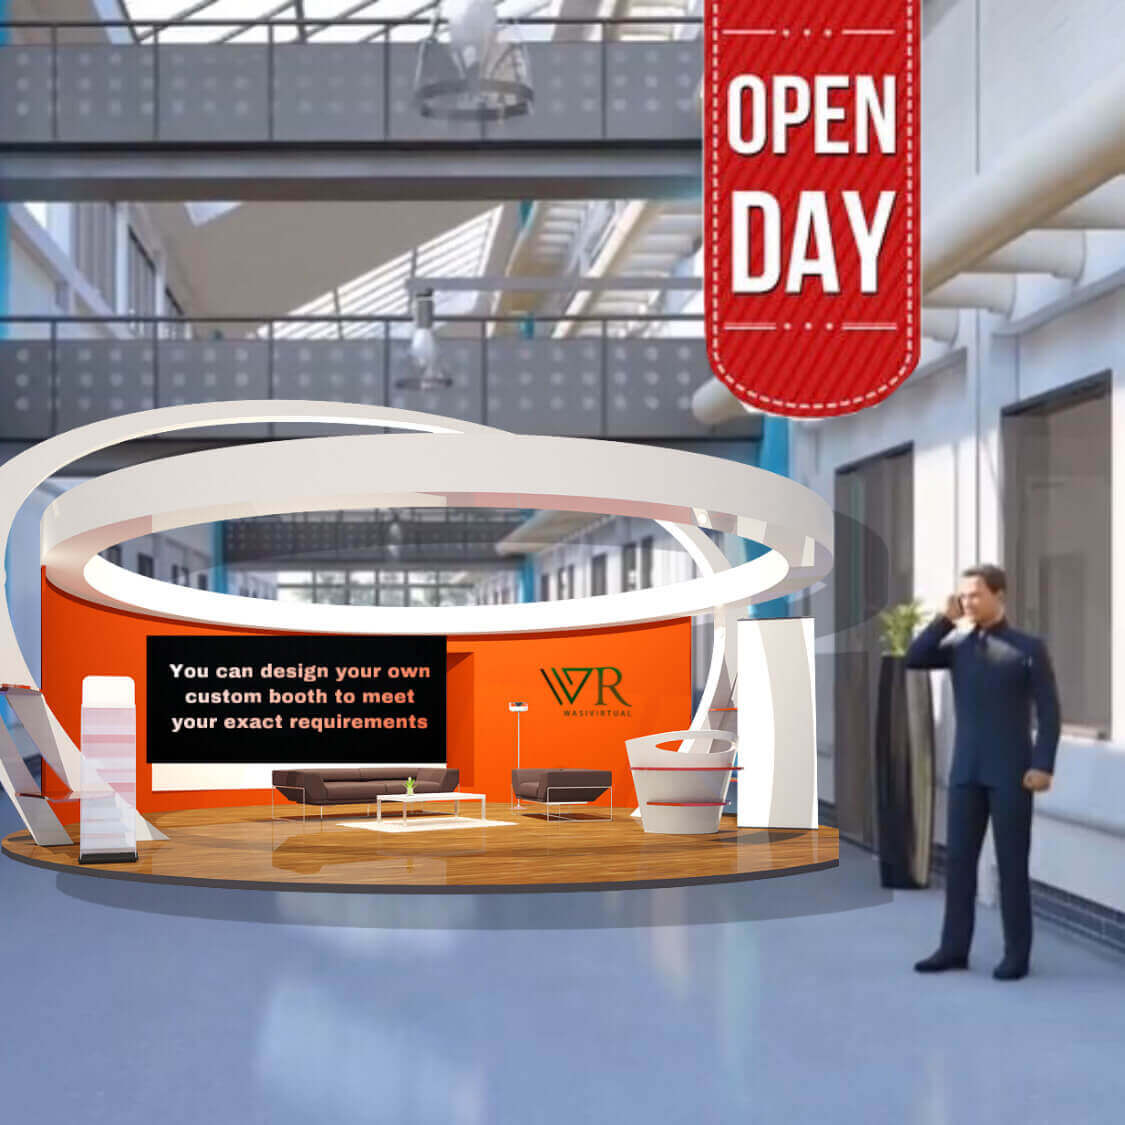 3-D open day